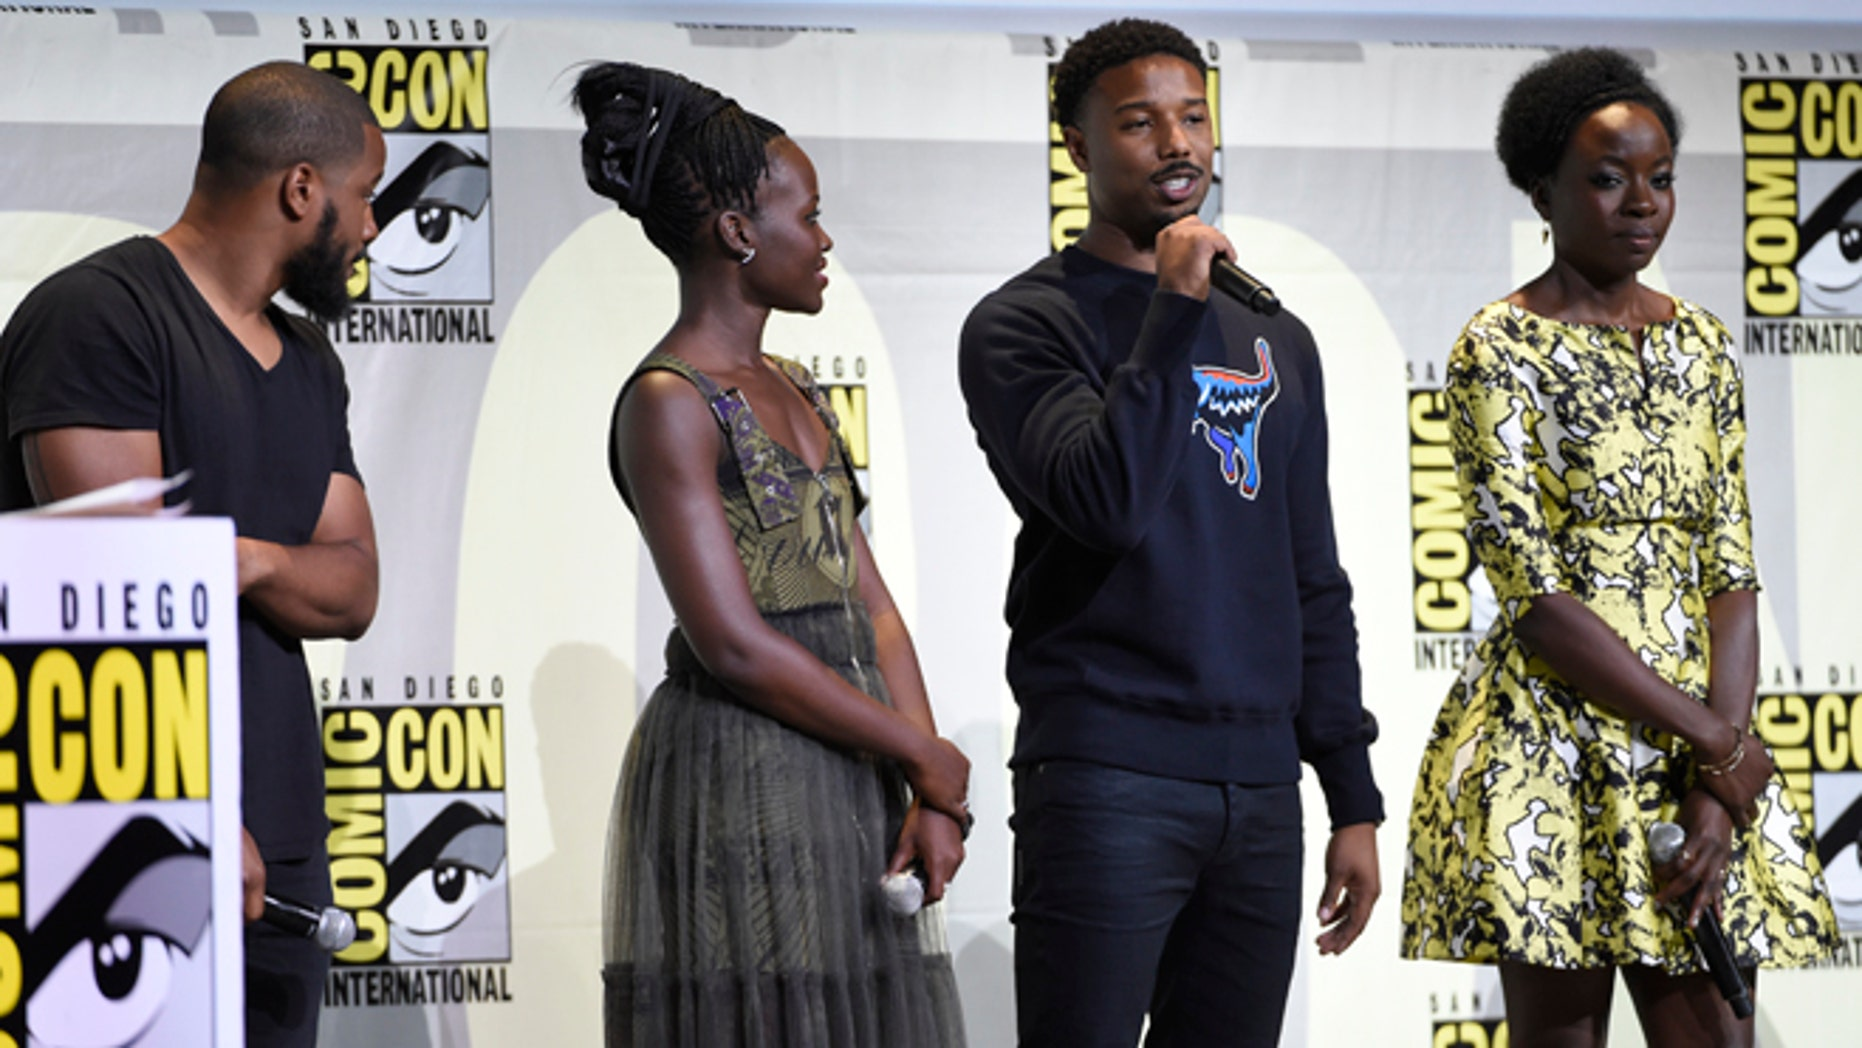 """FILE - In this July 23, 2016 file photo, director Ryan Coogler, from left, Lupita Nyong'o, Michael B. Jordan and Danai Gurira attend the """"Black Panther"""" panel on day 3 of Comic-Con International in San Diego. The movie set to begin filming in January will mark the third time director Ryan Coogler has worked with actor Michael B. Jordan. They teamed up previously on """"Creed"""" and """"Fruitvale Station.""""  (Photo by Chris Pizzello/Invision/AP, File)"""